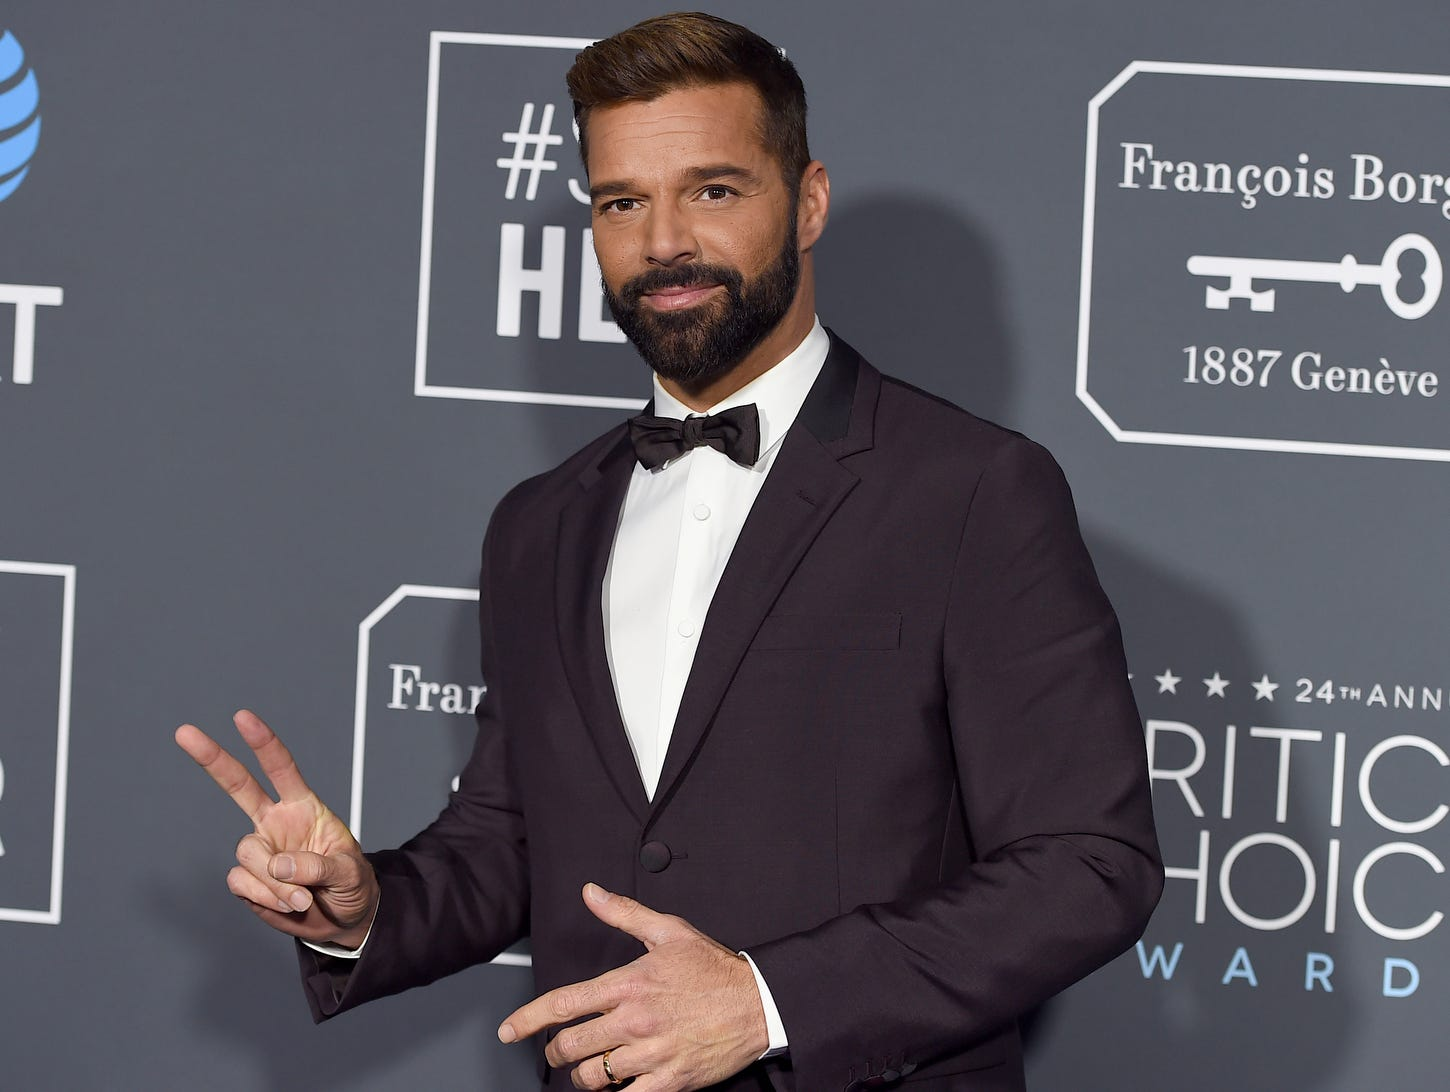 Ricky Martin comes in peace.